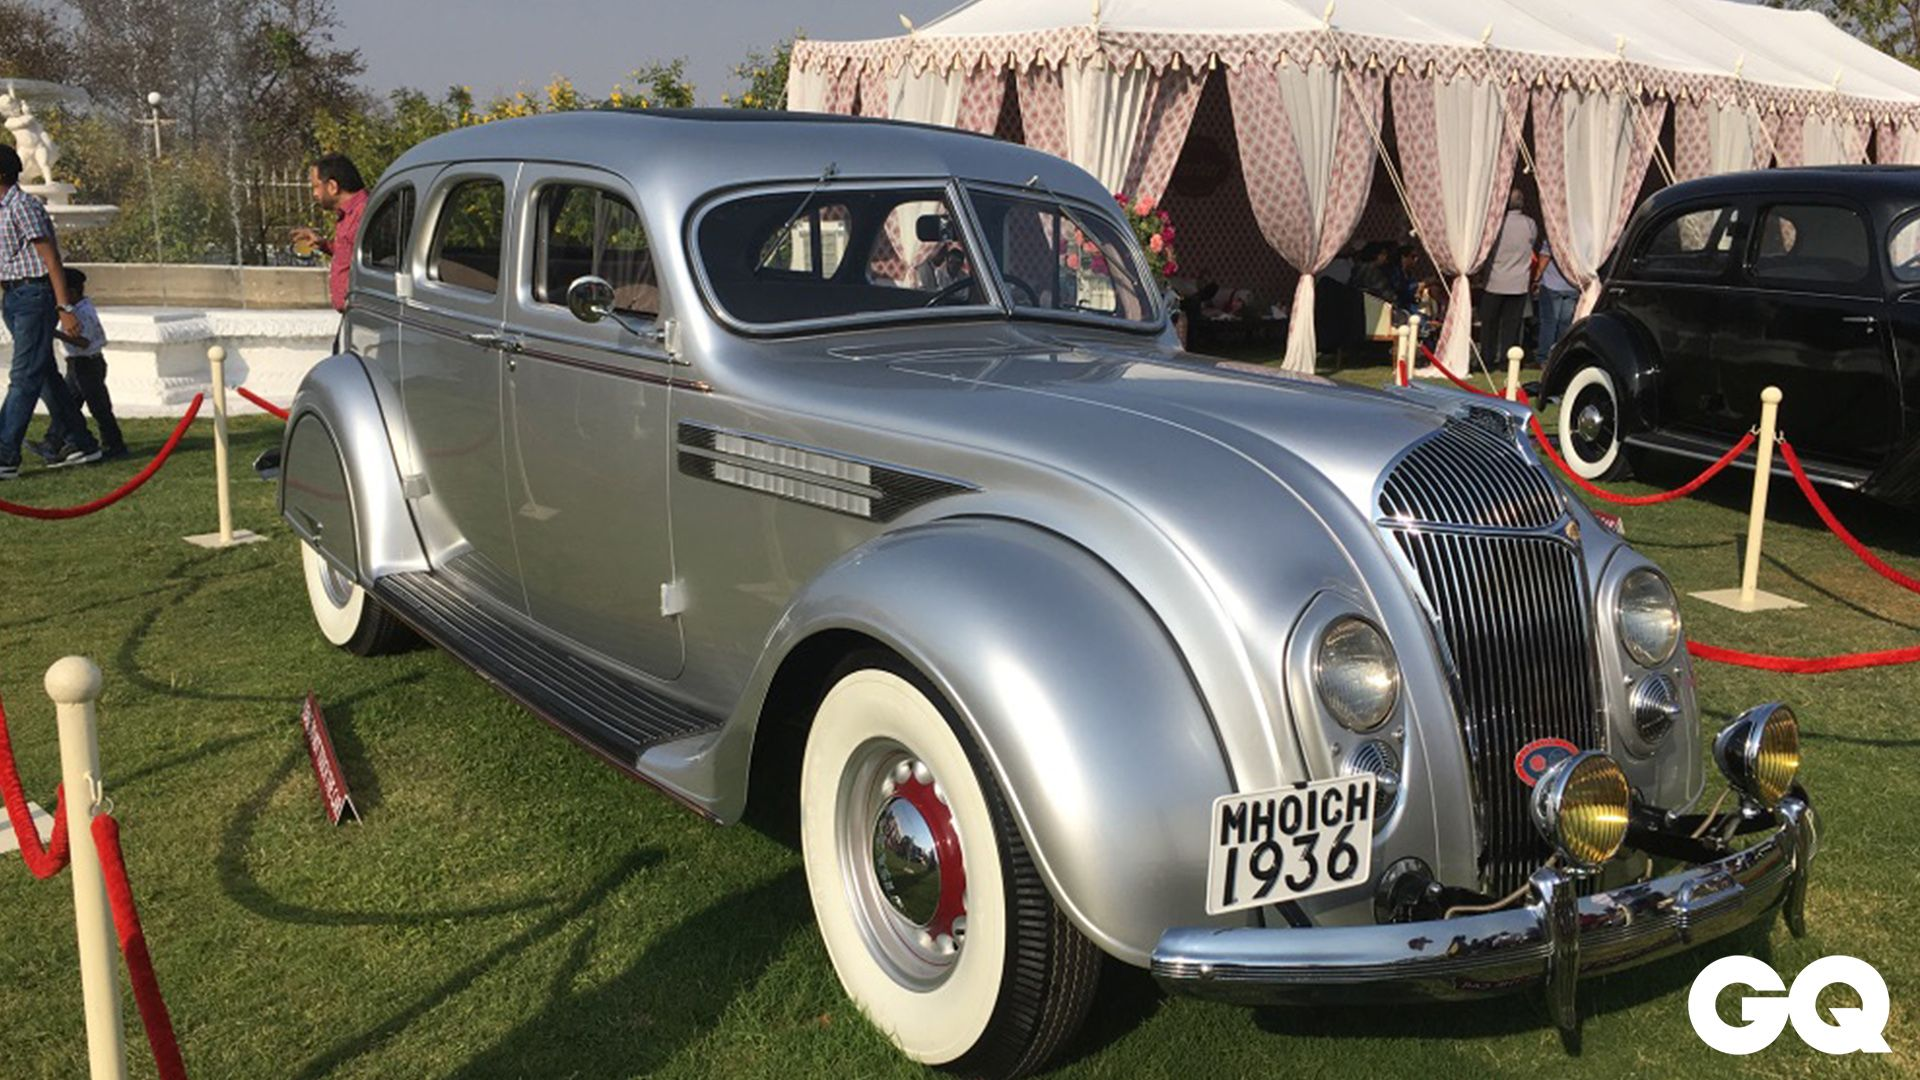 India's most prestigious vintage car show is candy land